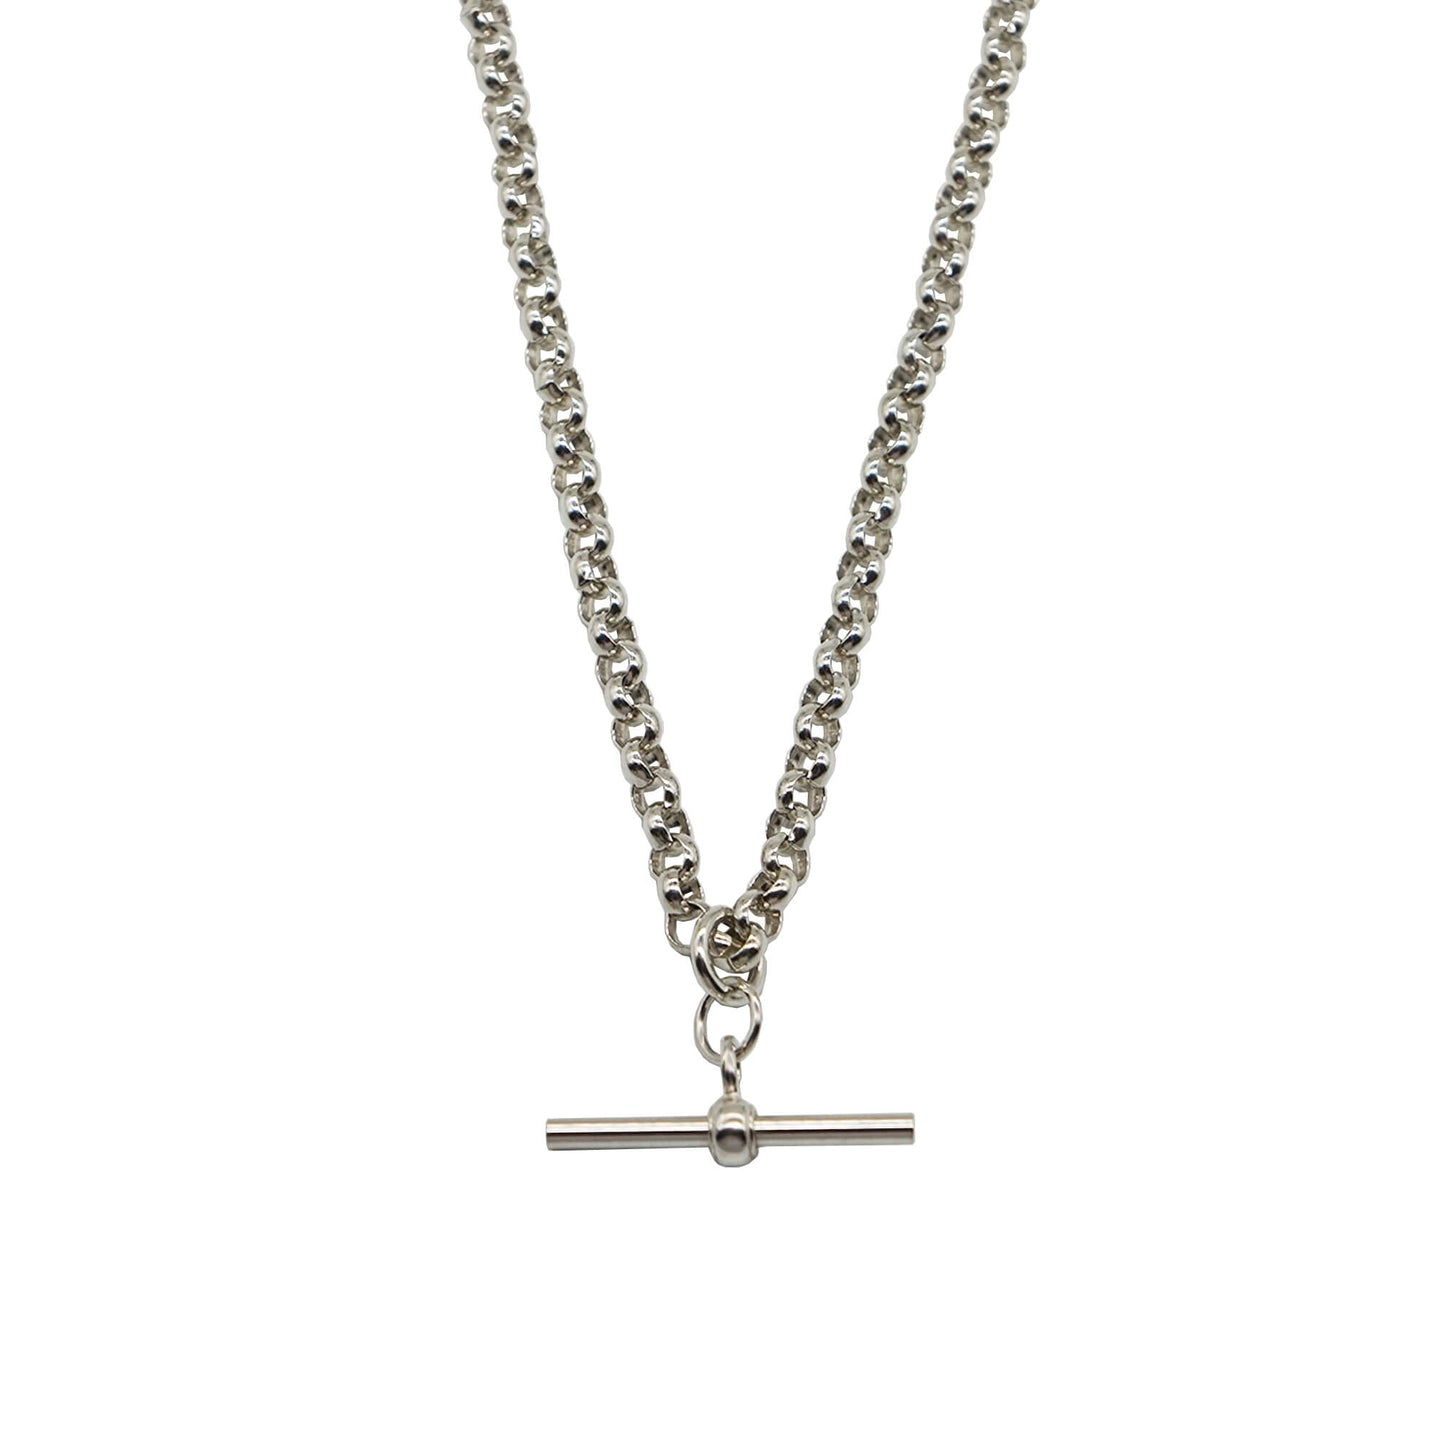 Close up Vintage T Bar Necklace on Belcher Chain in Silver. T Bar Charm is smooth. Background colour white.